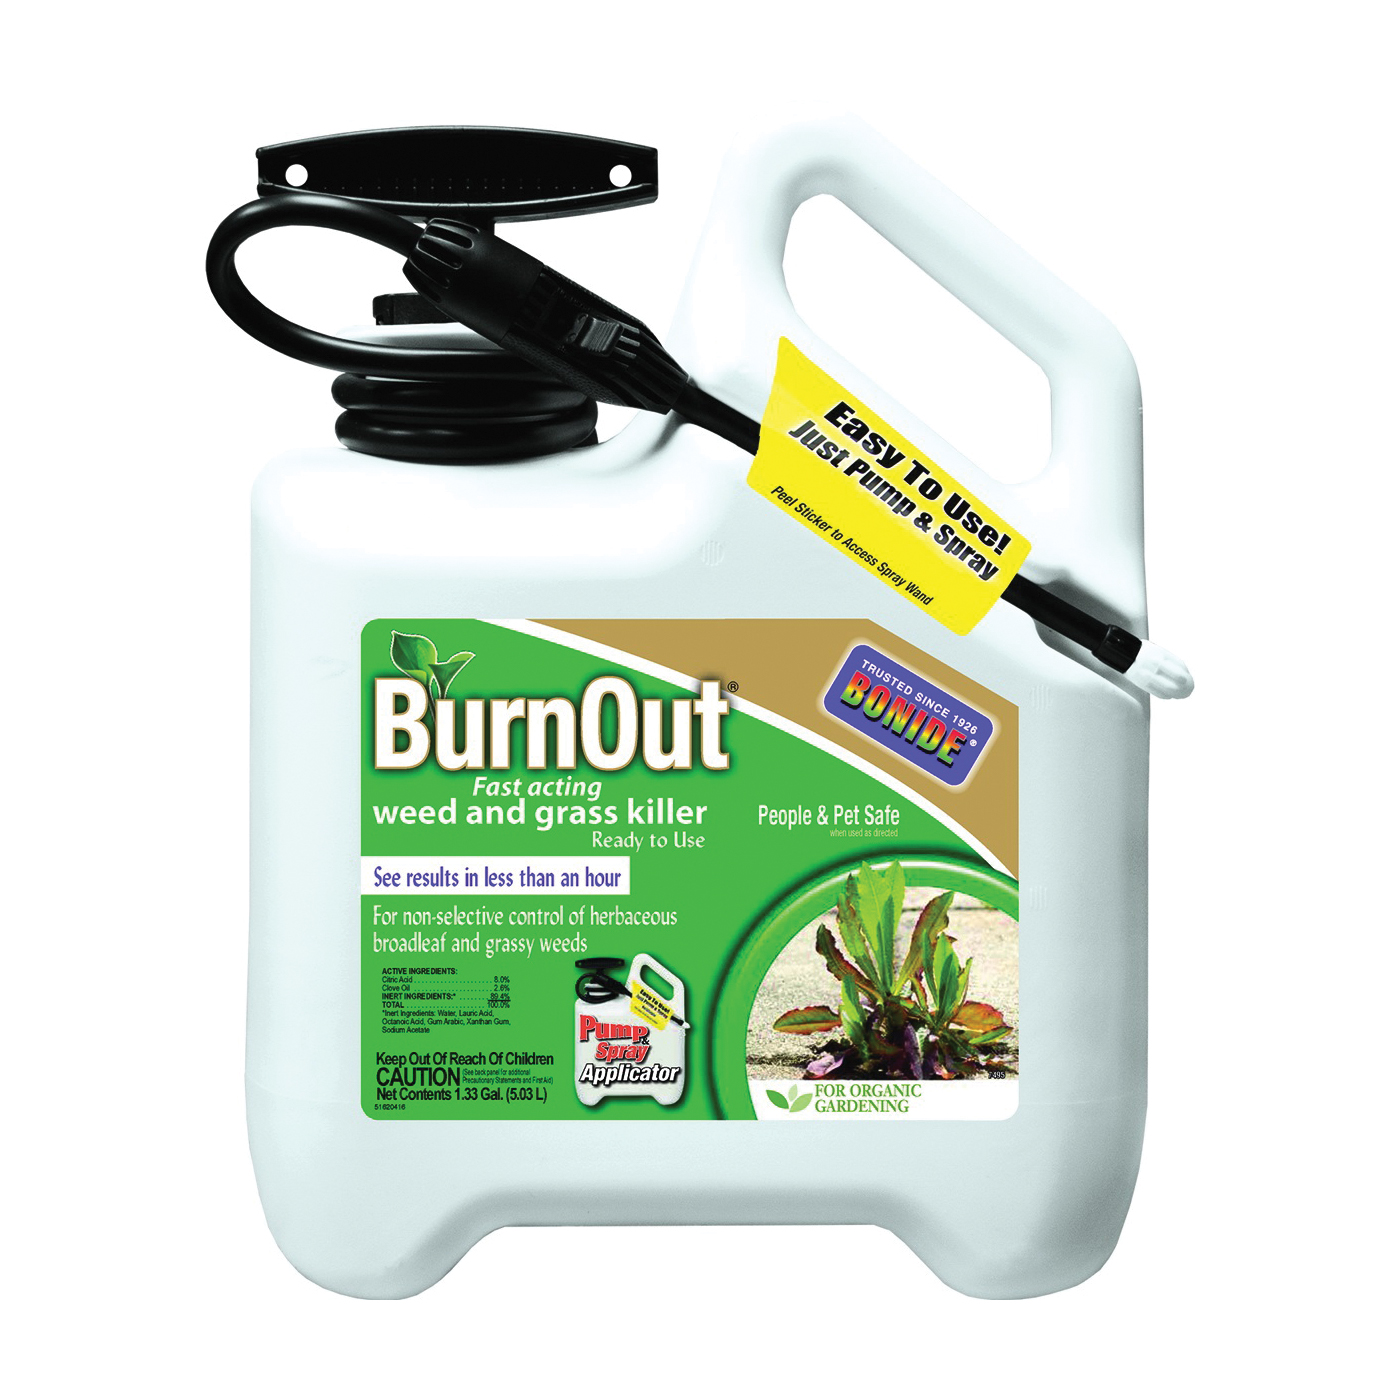 Picture of Bonide 7495 Weed and Grass Killer, Liquid, Light Yellow/White, 1.33 gal Package